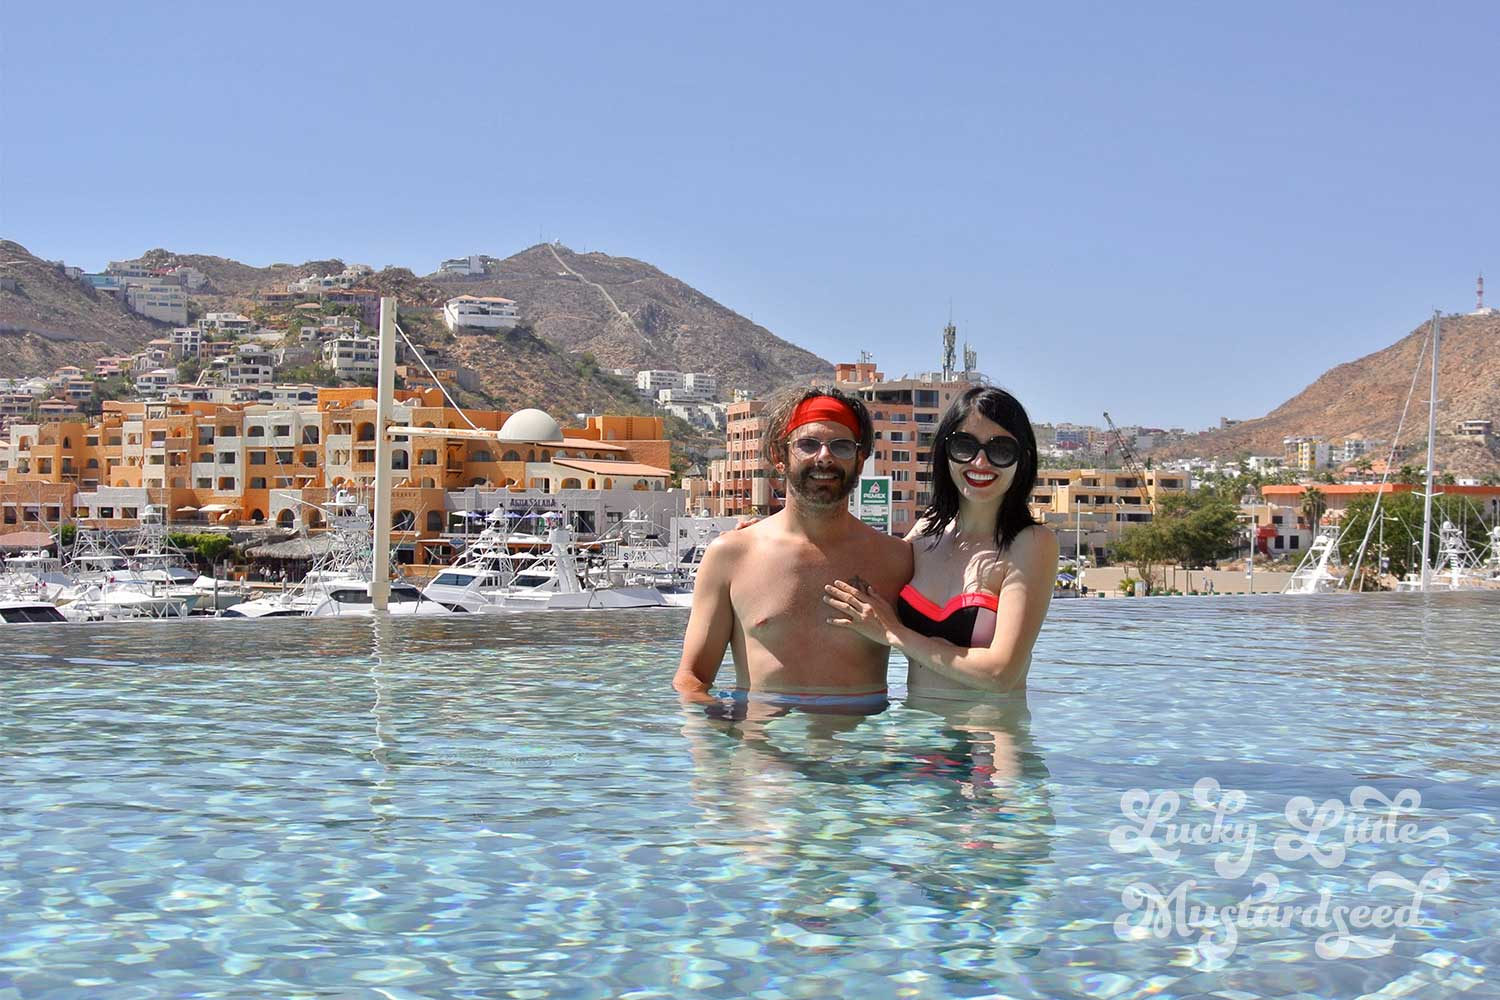 Jenna-Pilant-Style-Blogger-San-Diego-Lucky-Little-Mustardseed-Me-and-D-Cabomoon-Breathless-Resort-Cabo-10